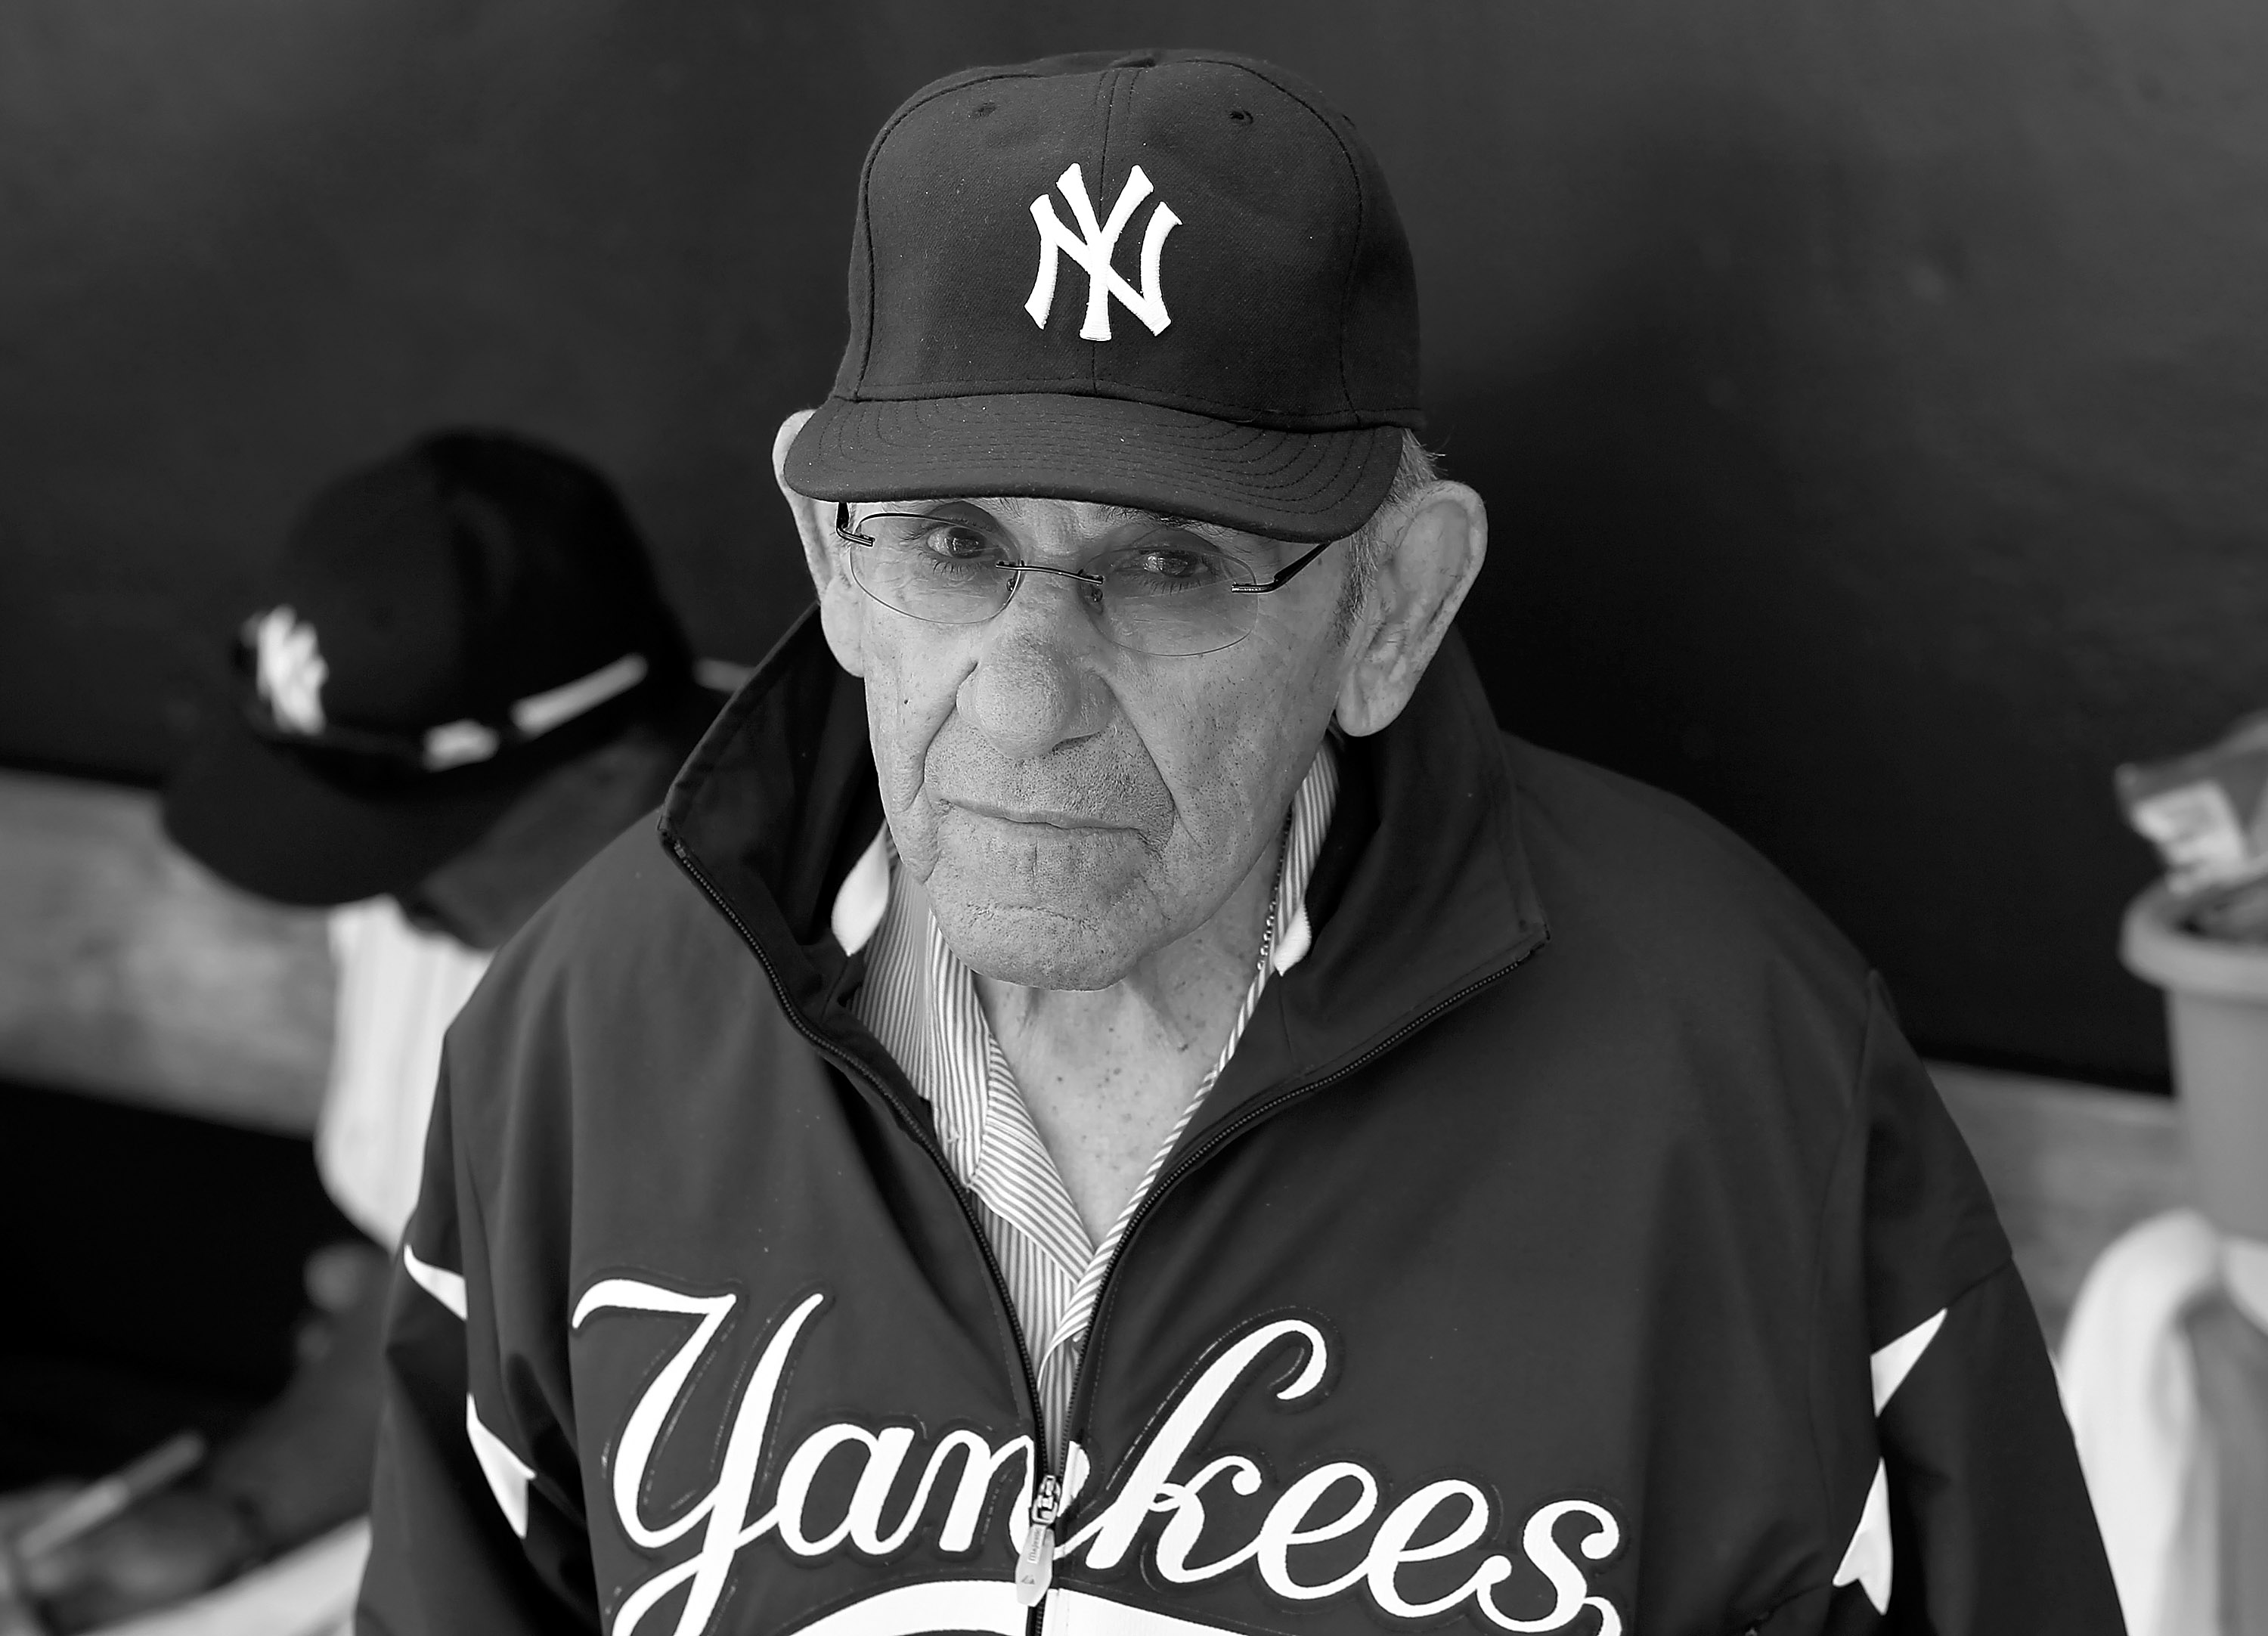 TAMPA, FL - FEBRUARY 26:  (EDITORS NOTE: Image has been converted to black and white.)  Hall of Famer Yogi Berra of the New York Yankees stands in the dugout just prior to the start of the Grapefruit League Spring Training Game against the Philadelphia Ph